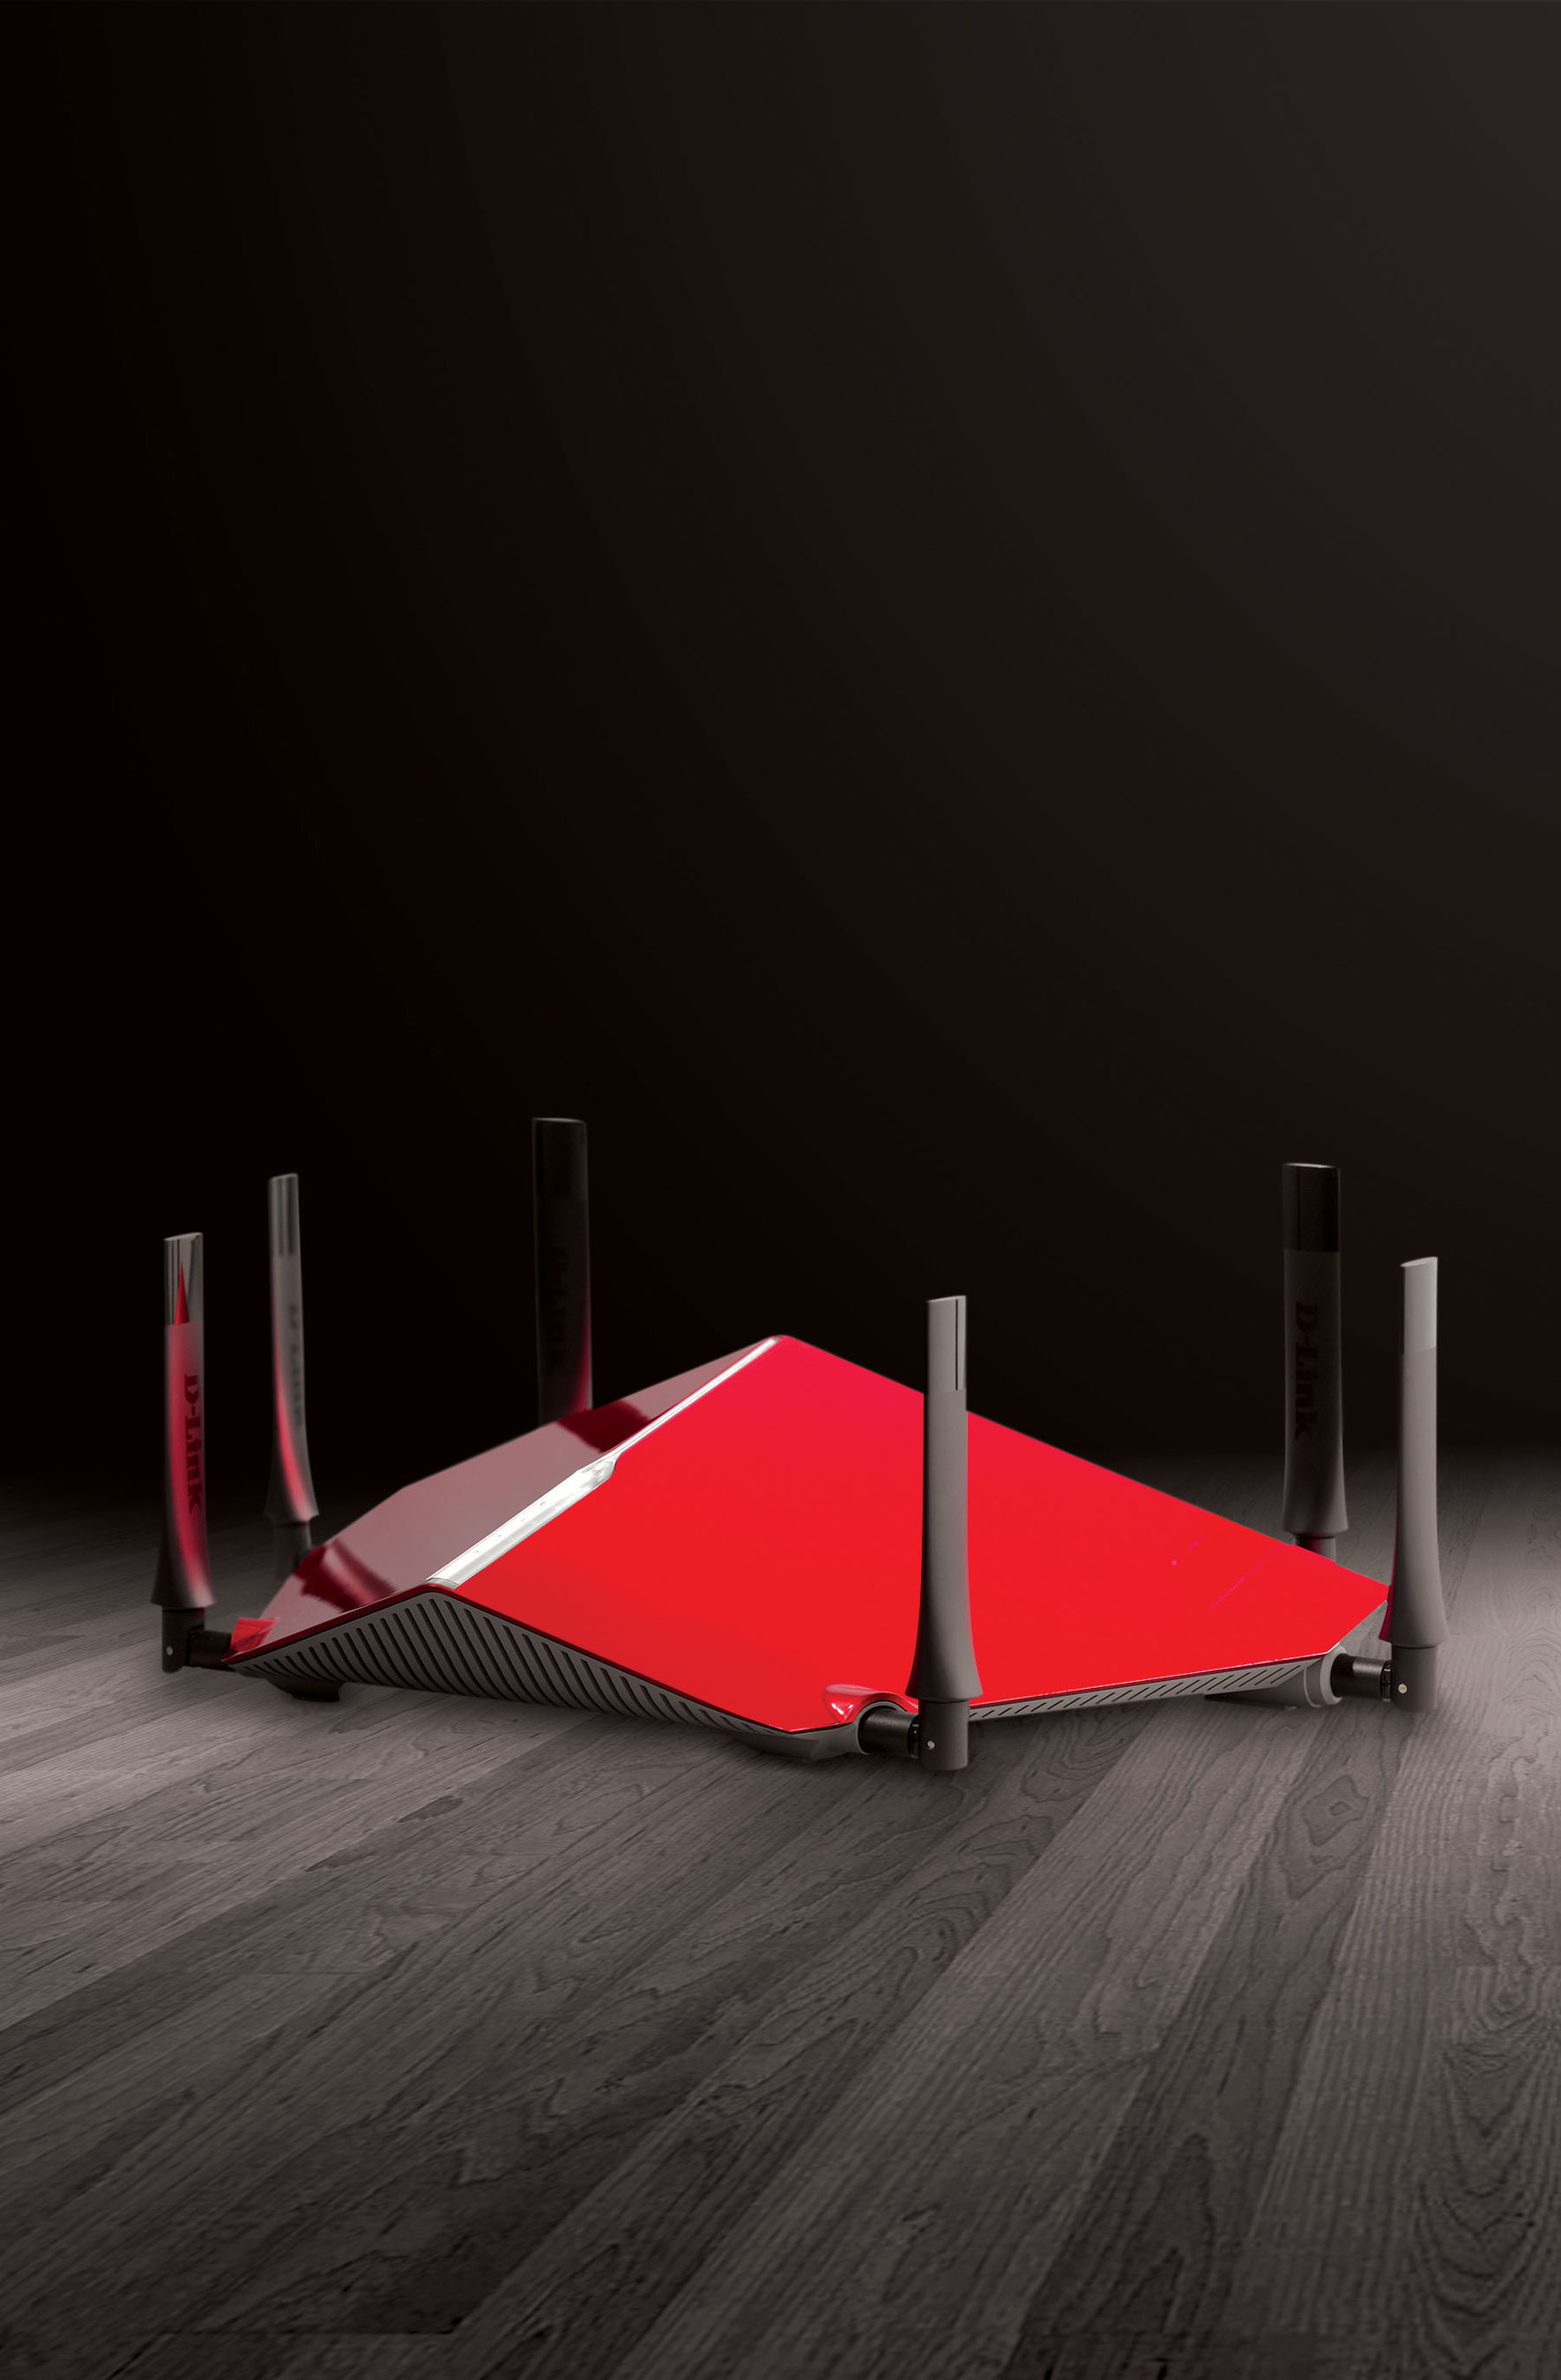 Ushering in the bold new look of D-Link home networking, the ULTRA Performance Series of 11AC Wi-Fi Routers and Adapters are built with the speed, coverage and processing power needed to support the most bandwidth-demanding applications and devices